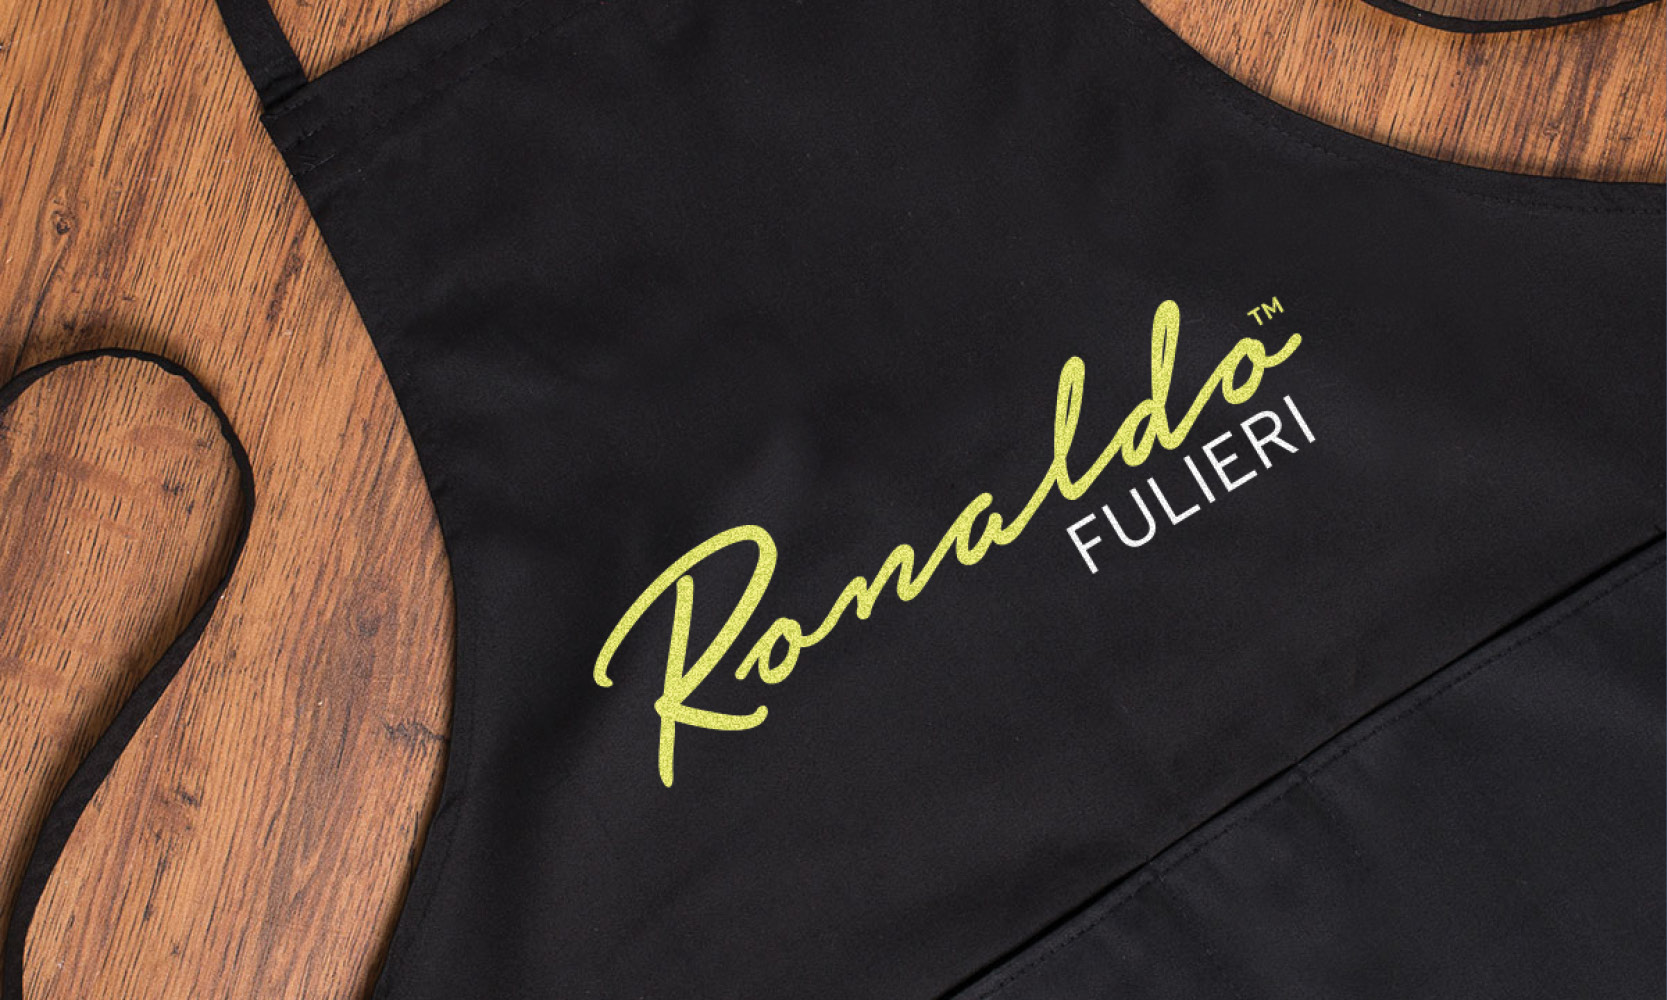 Branding design for Ronaldo Fulieri - logo embroidered on cooking apron